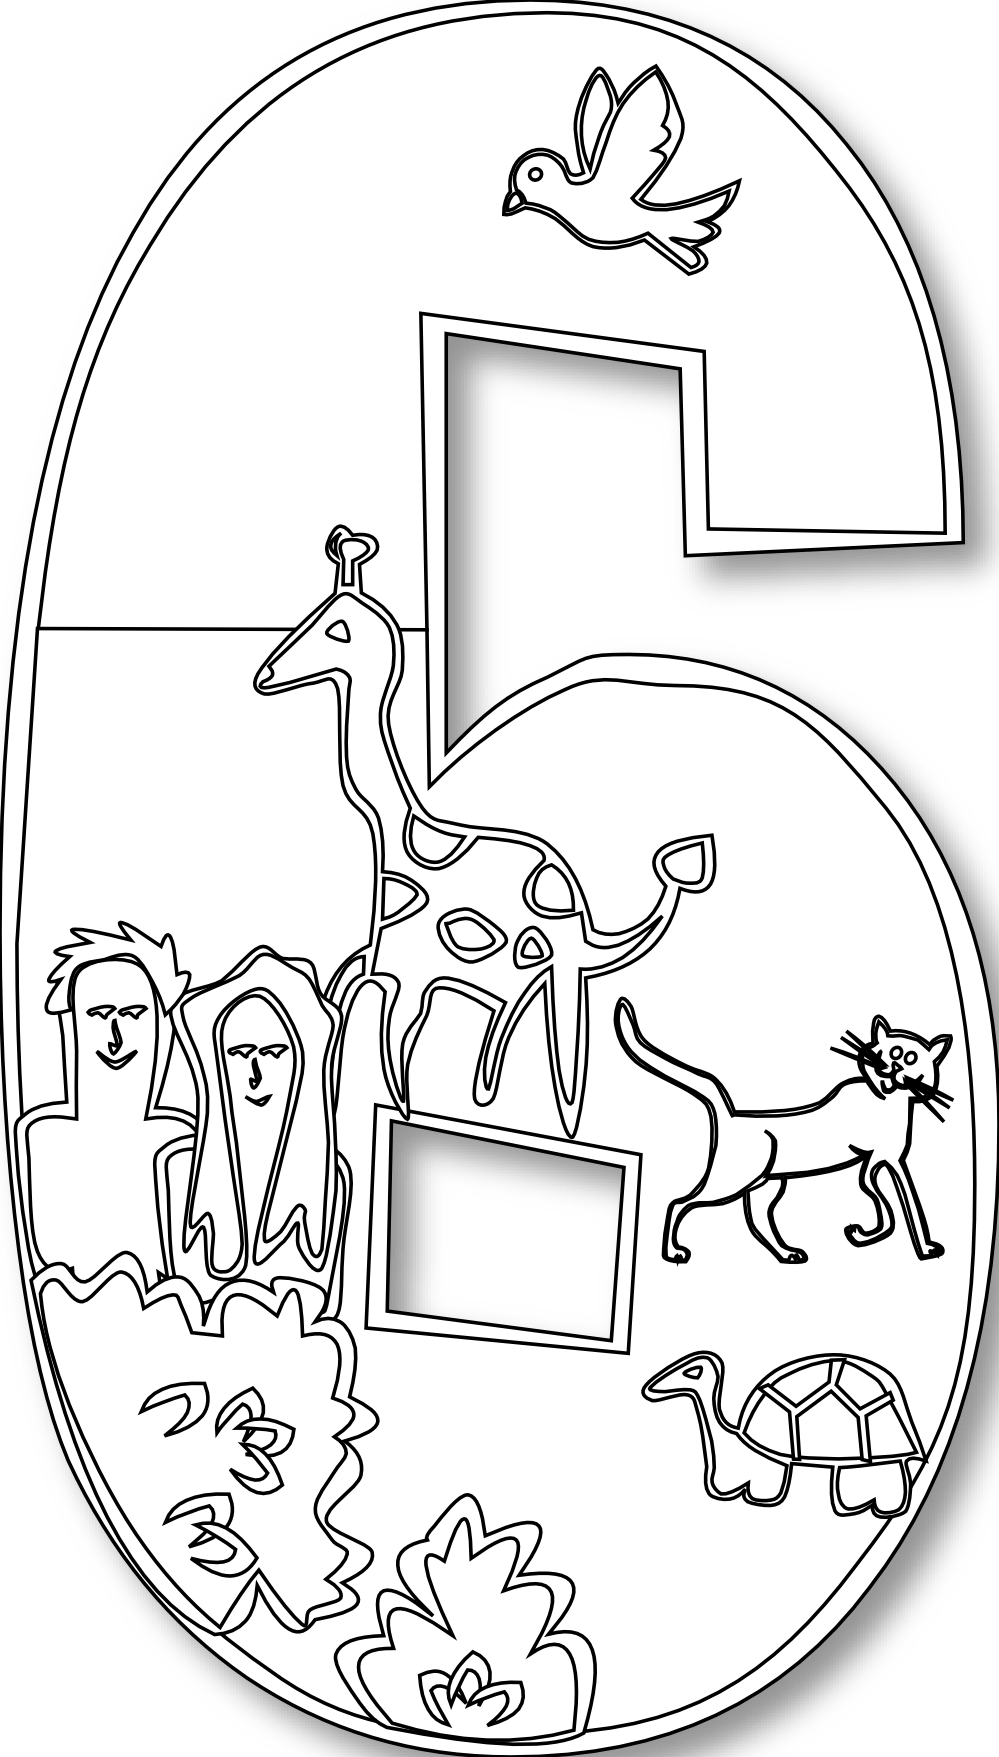 number clipart black and white creation.